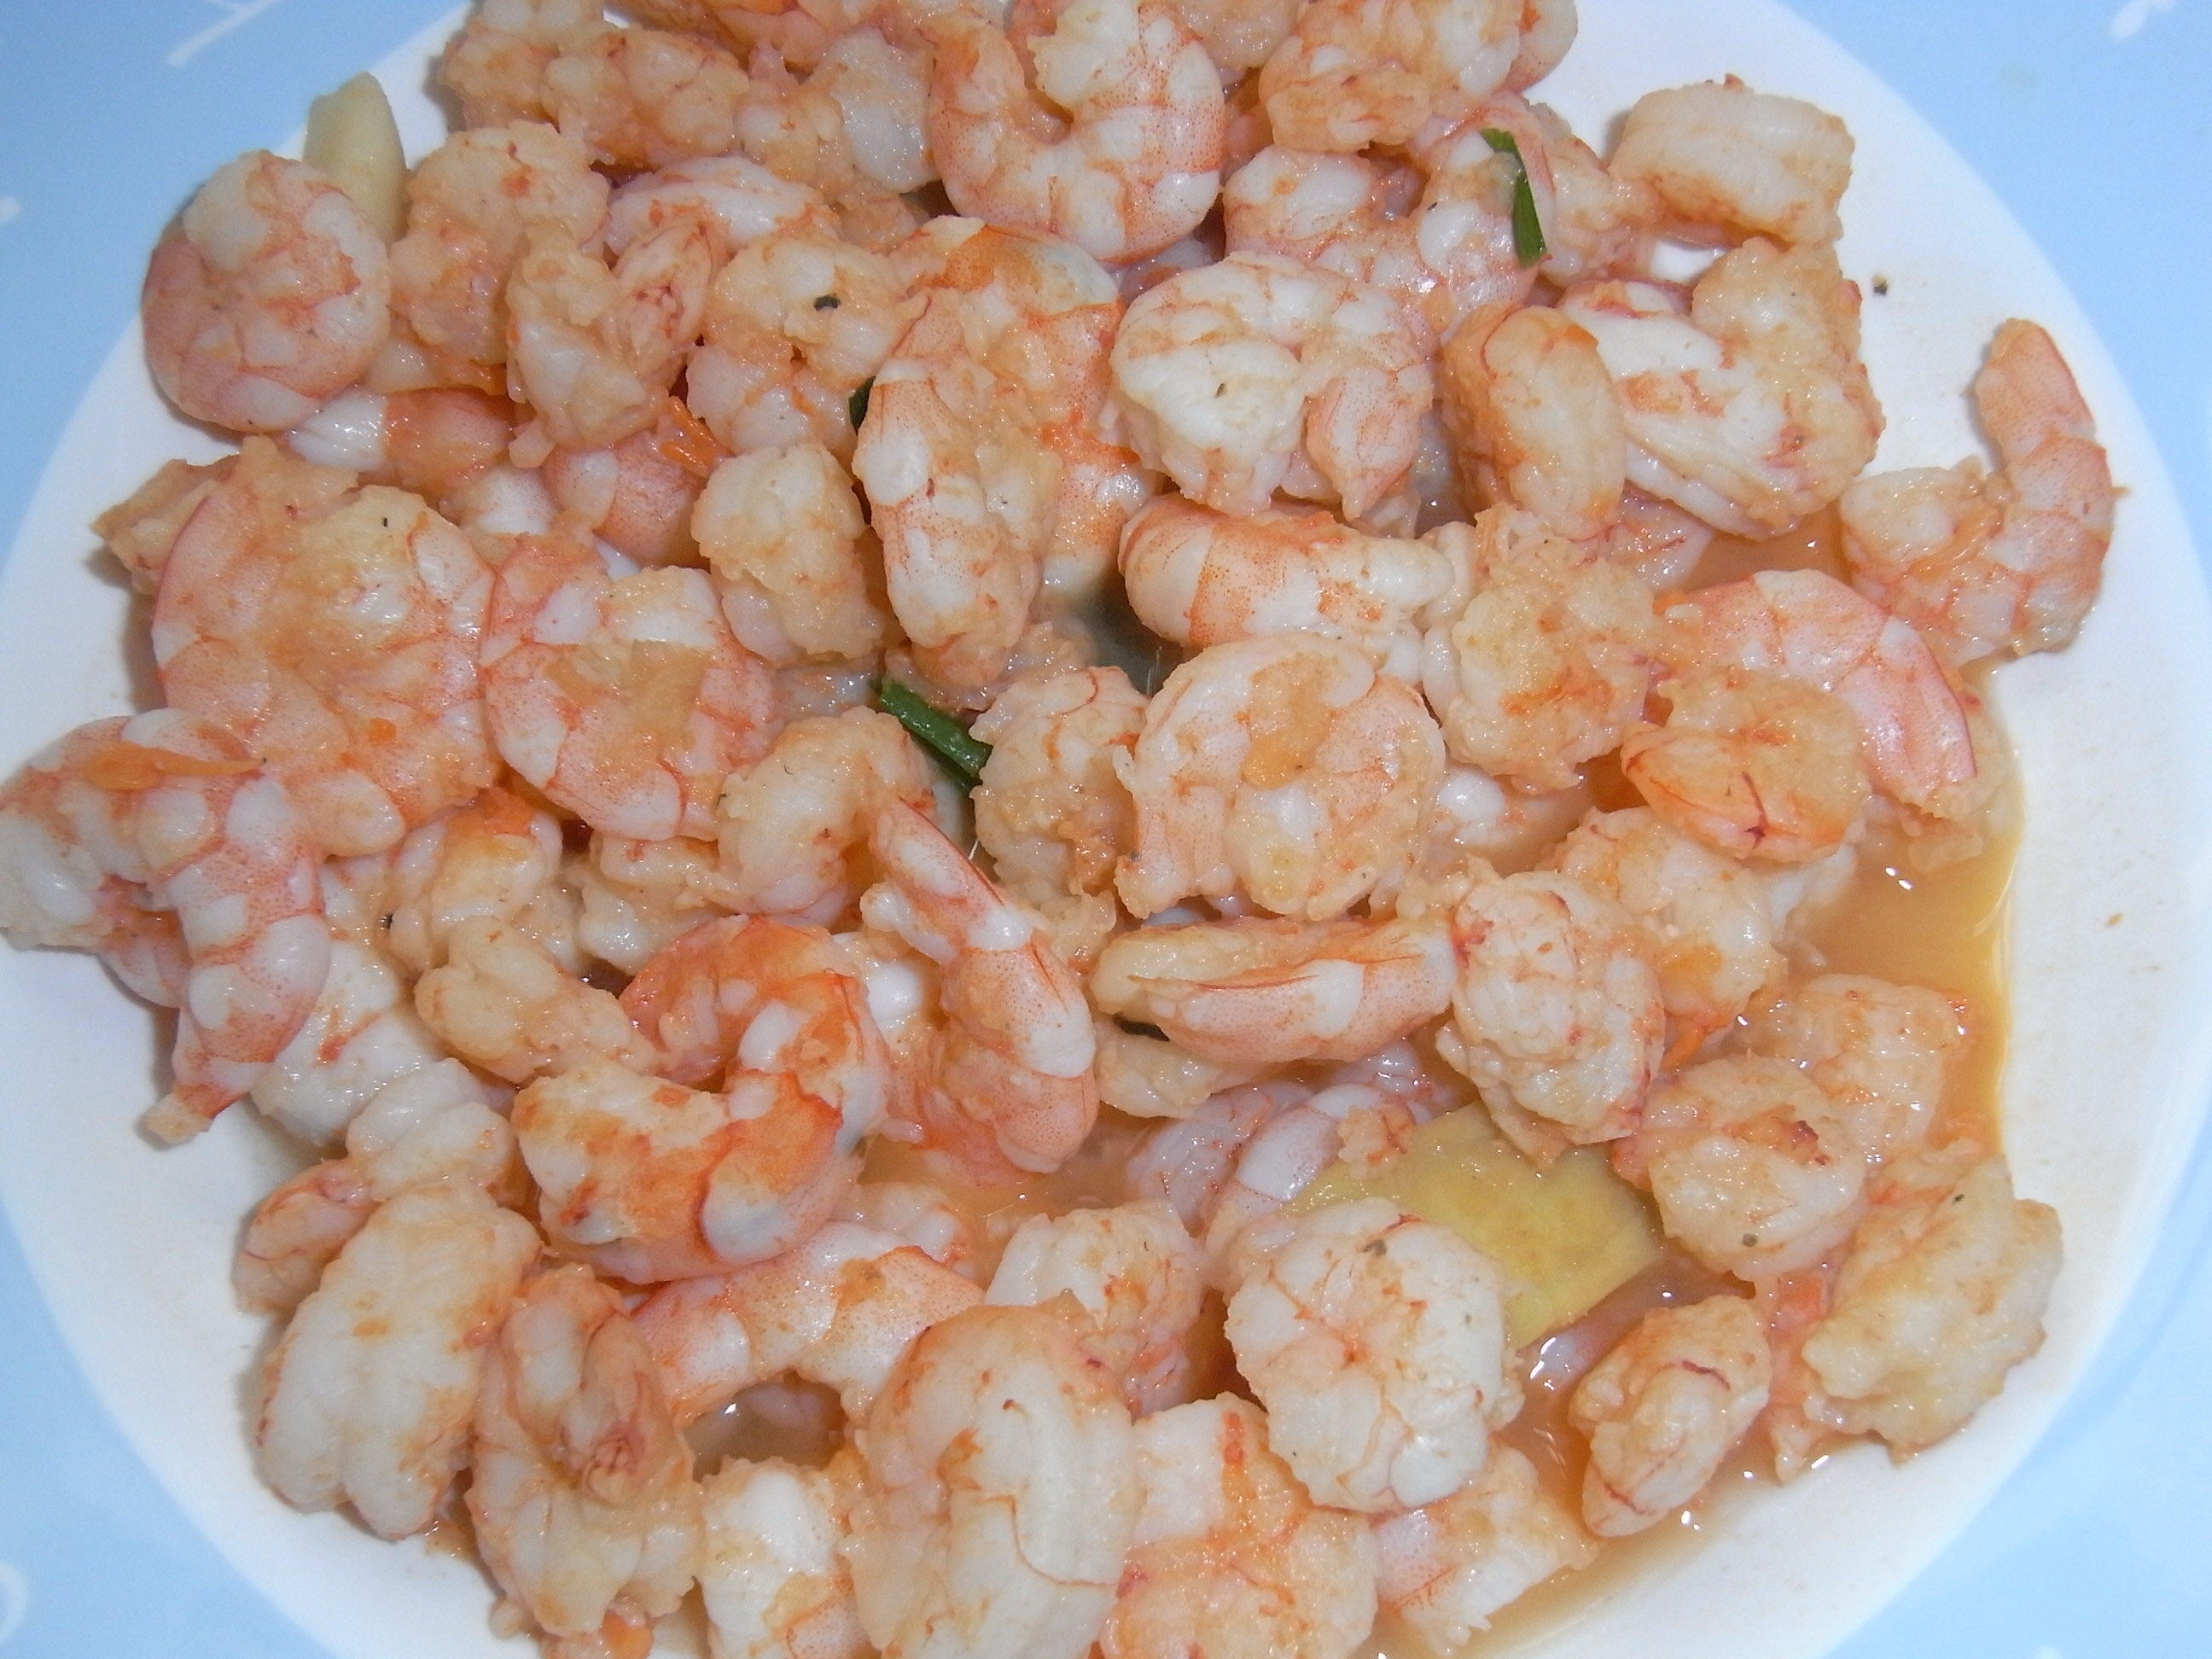 Filehk Food Seafood Shrimps 蝦仁 Prawns June 2012jpg Wikimedia